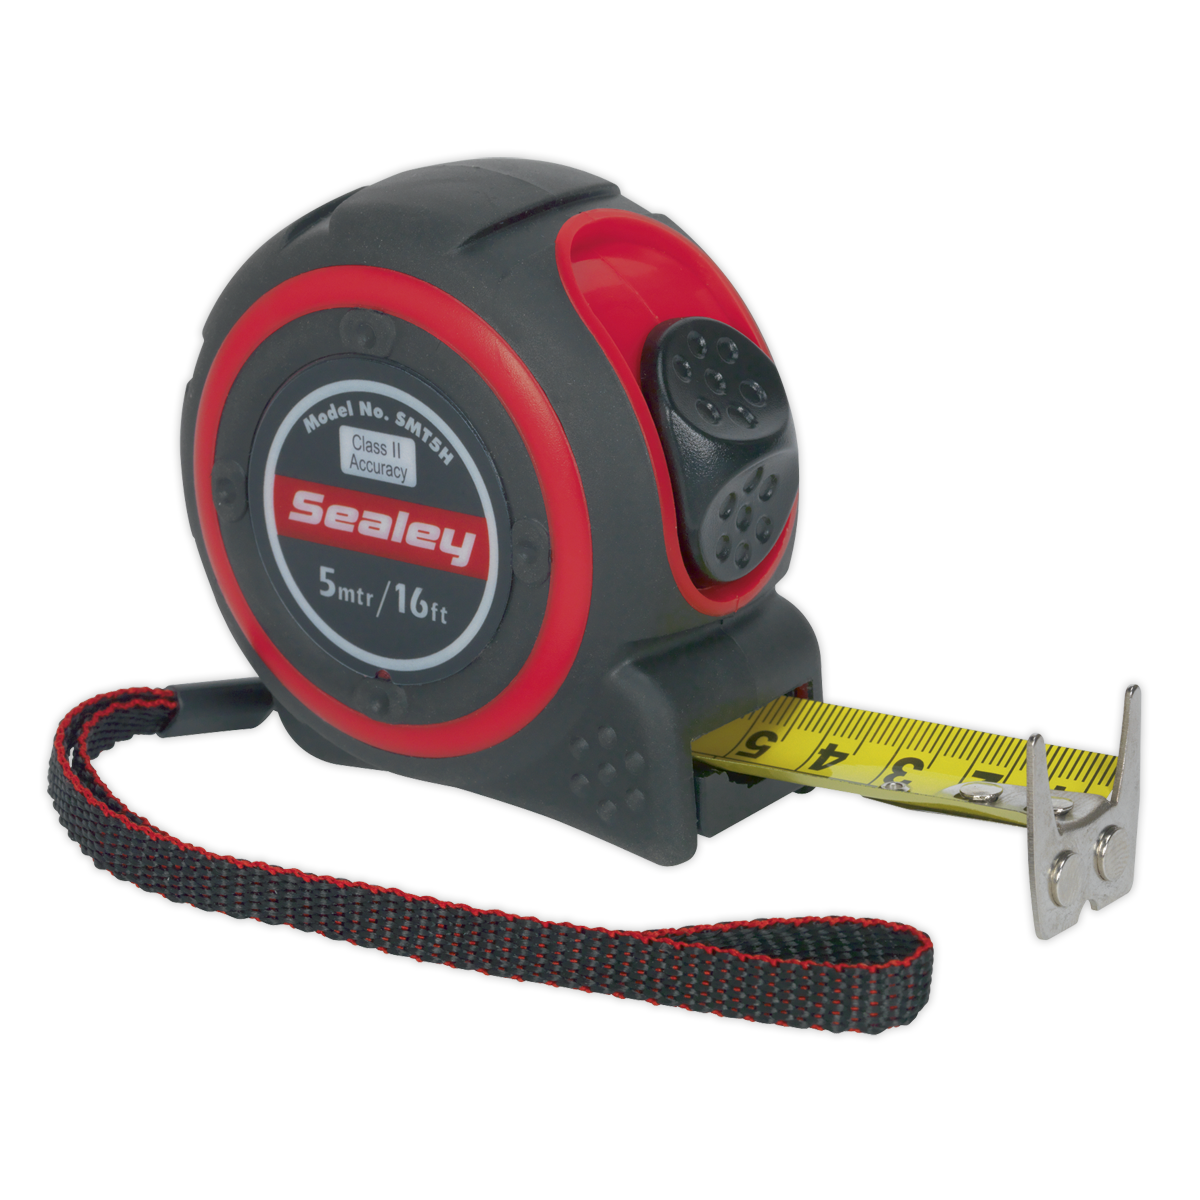 Heavy-Duty Measuring Tape 5mtr(16ft)